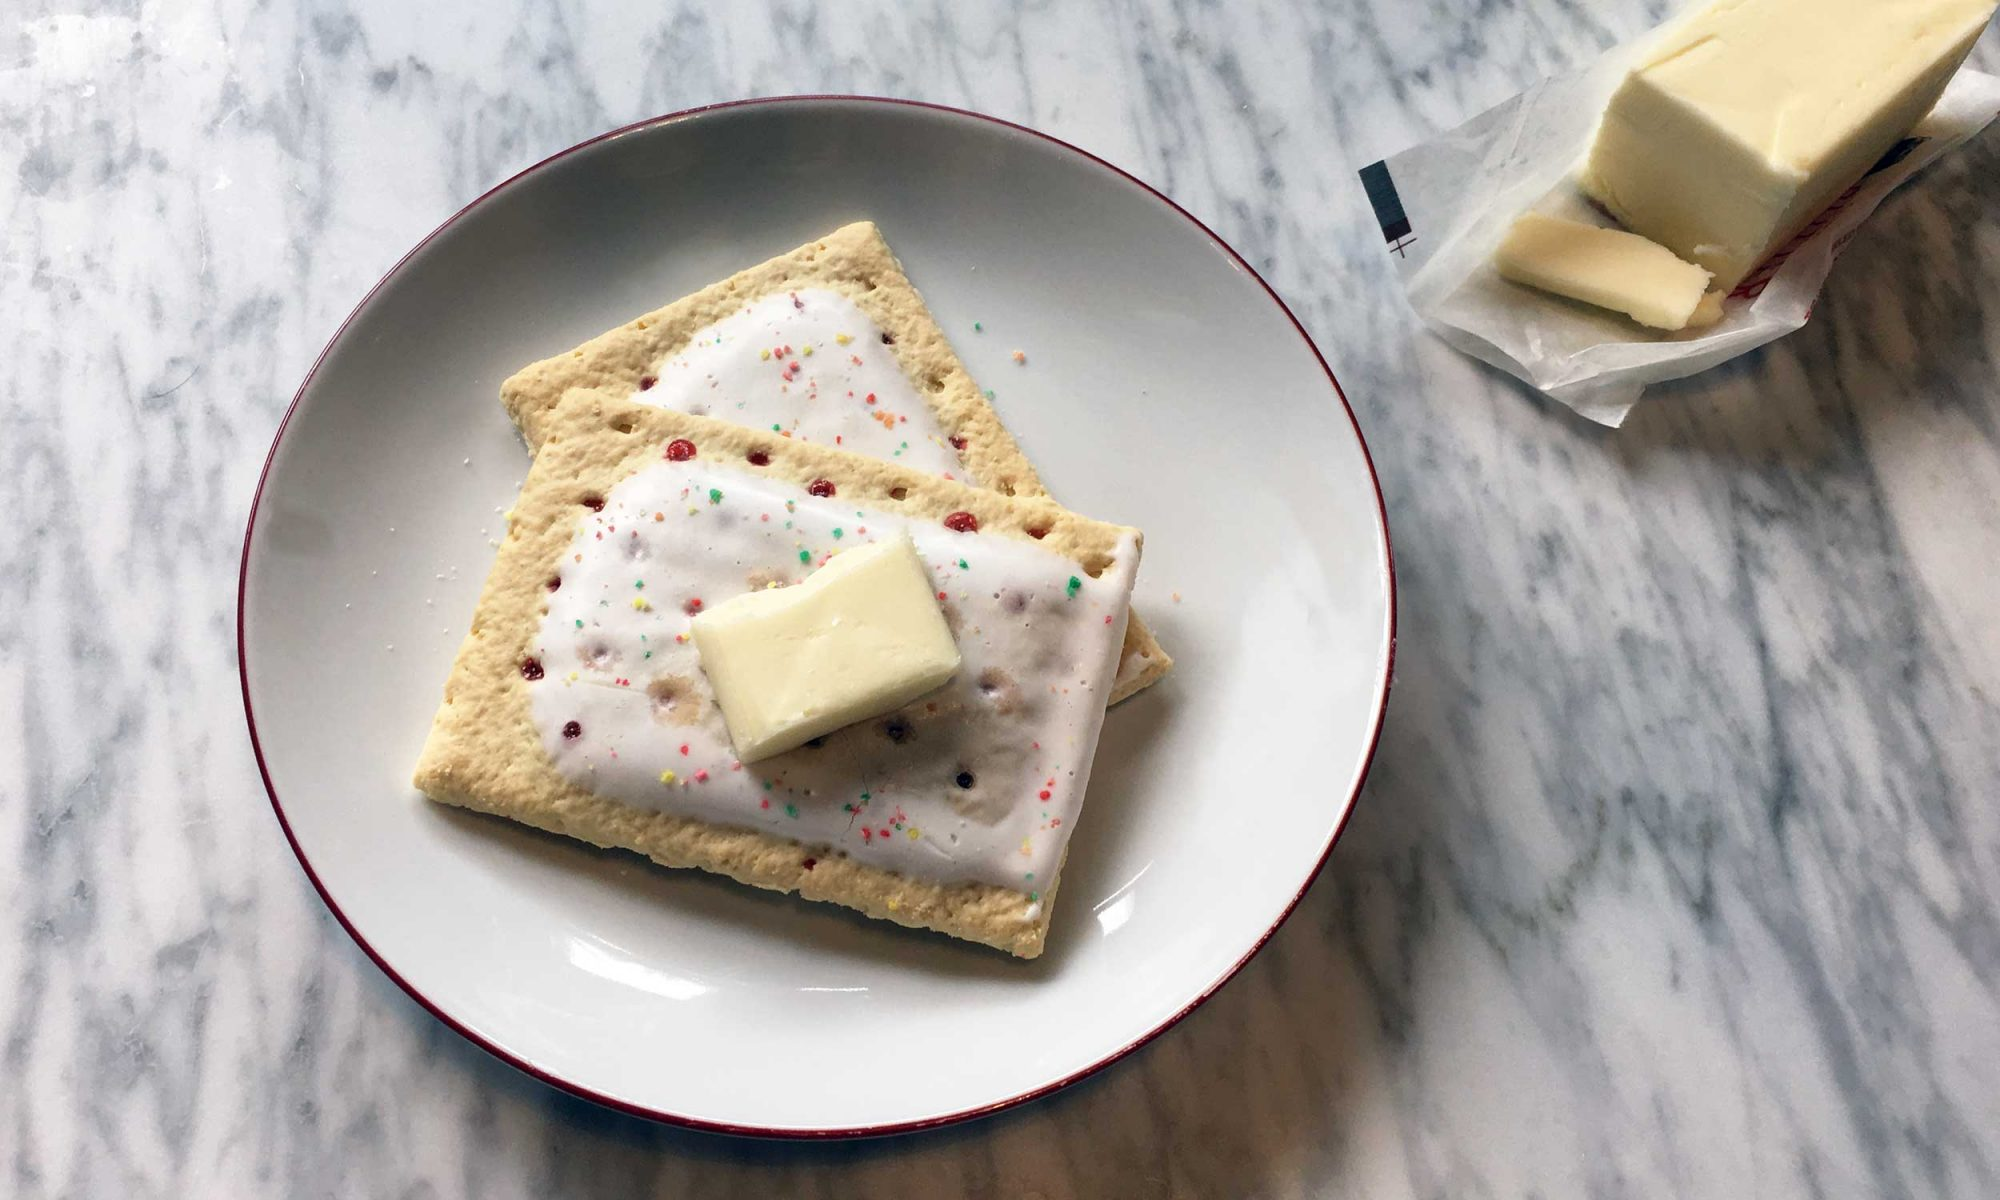 EC: Someone Called the Police Over This Pop-Tart Sandwich